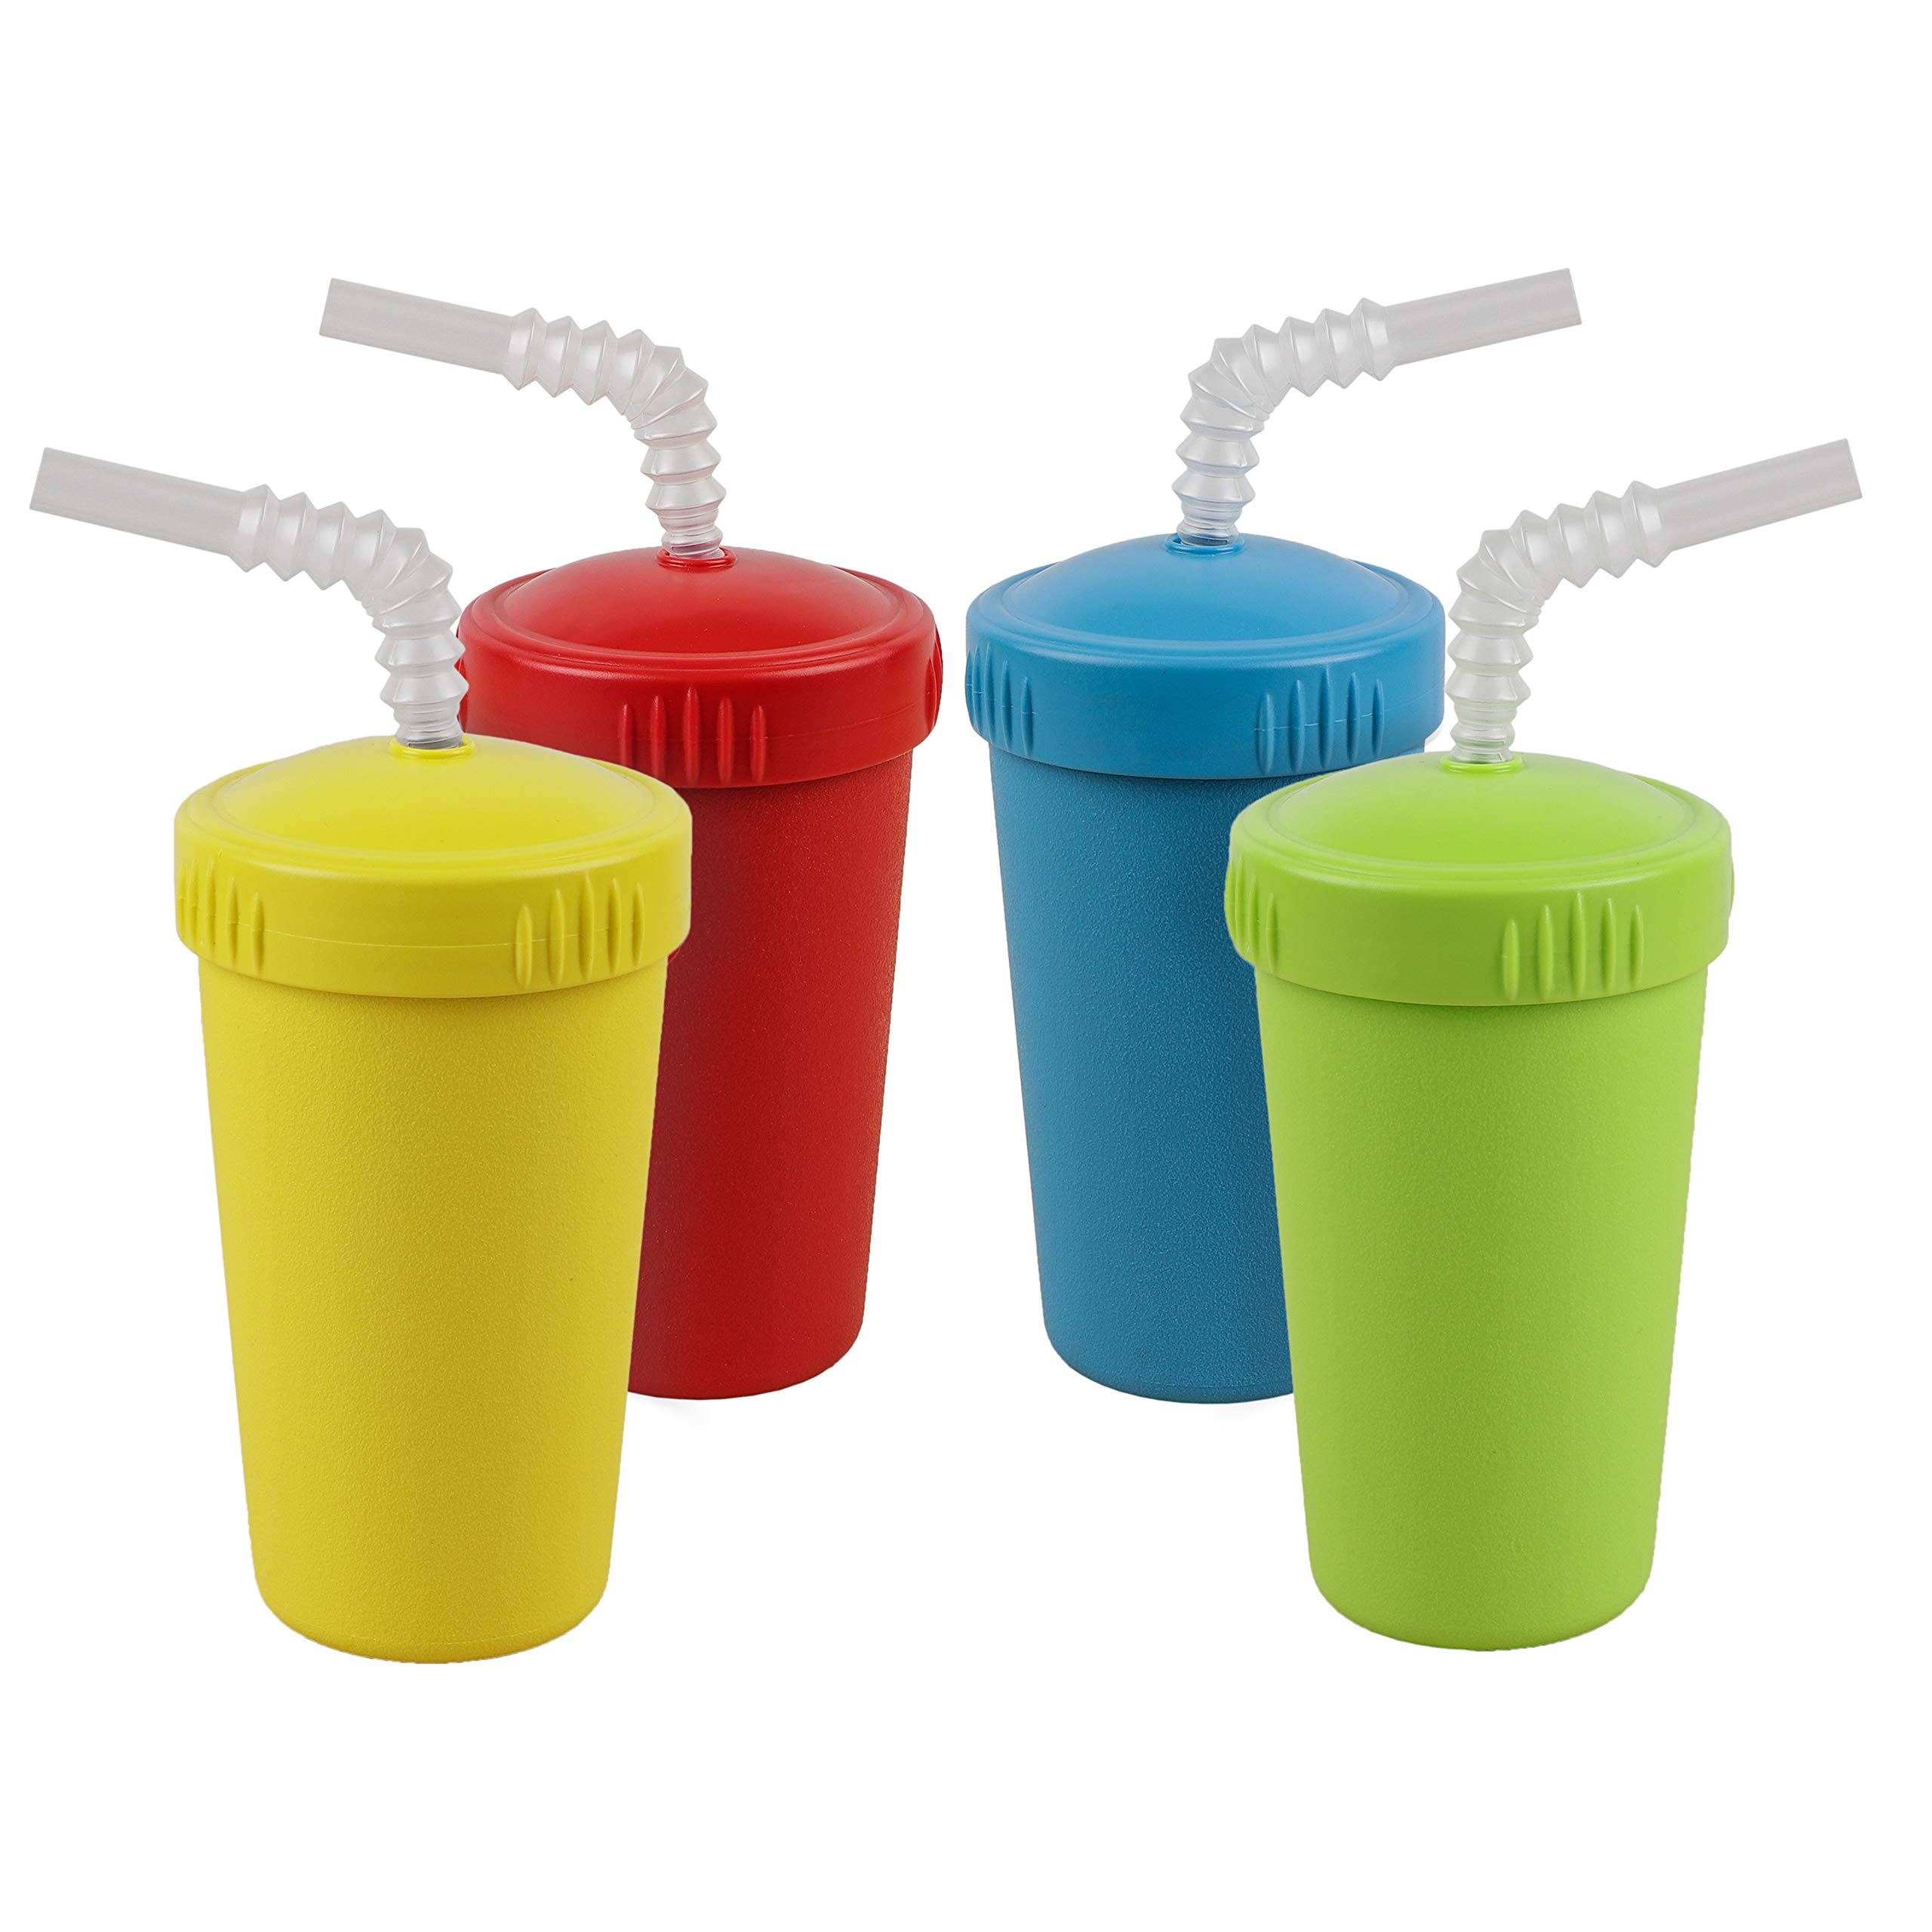 Re-Play Made in USA 4pk Straw Cups with Bendable Straw in Sky Blue, Red, Lime Green and Yellow   Made from Eco Friendly Heavyweight Recycled Milk Jugs - Virtually Indestructible (Preschool+)